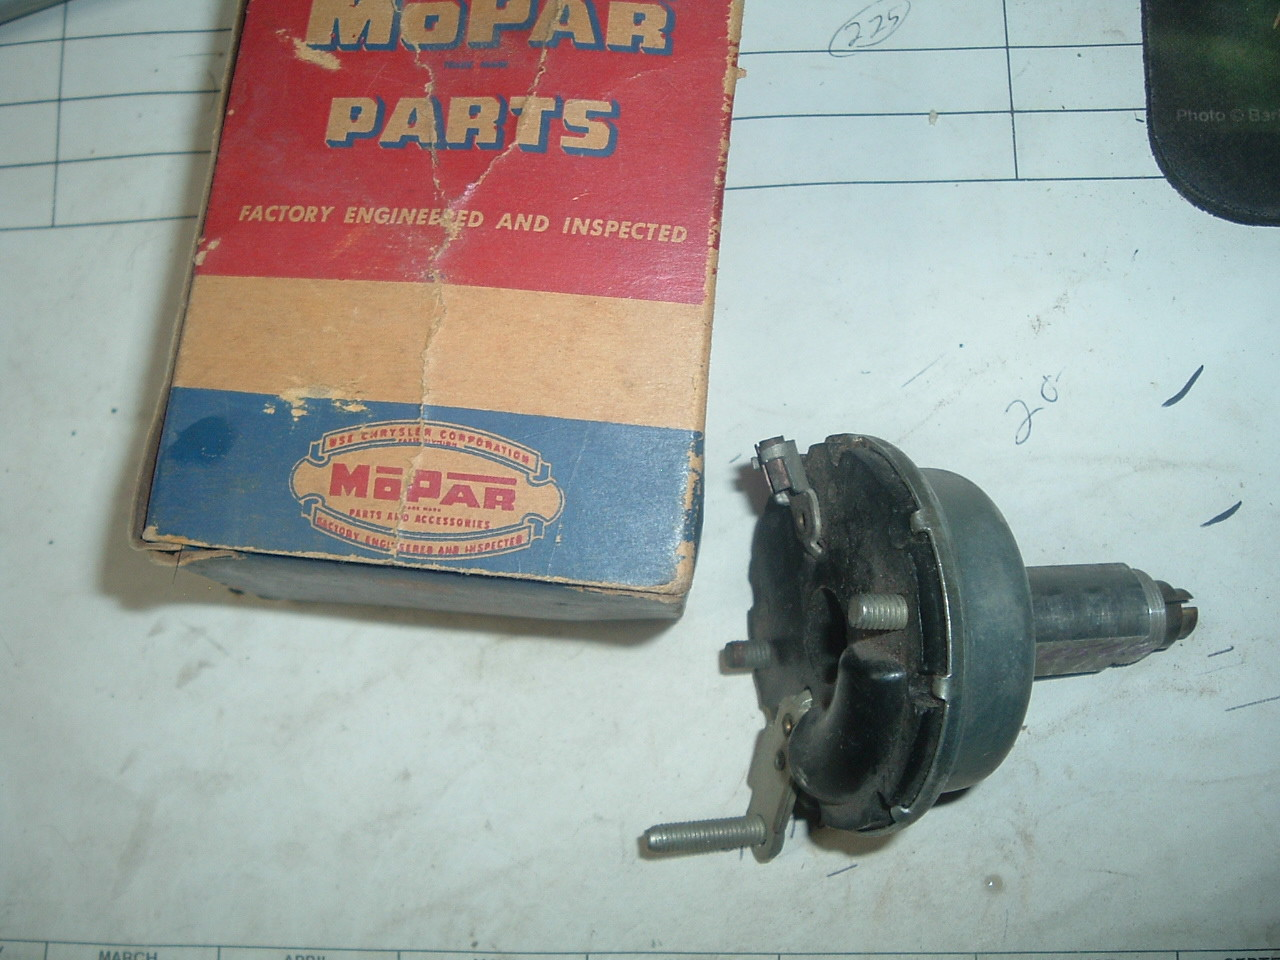 11955 dodge interior dash light switch nos mopar # 1605026 (z 1605026)